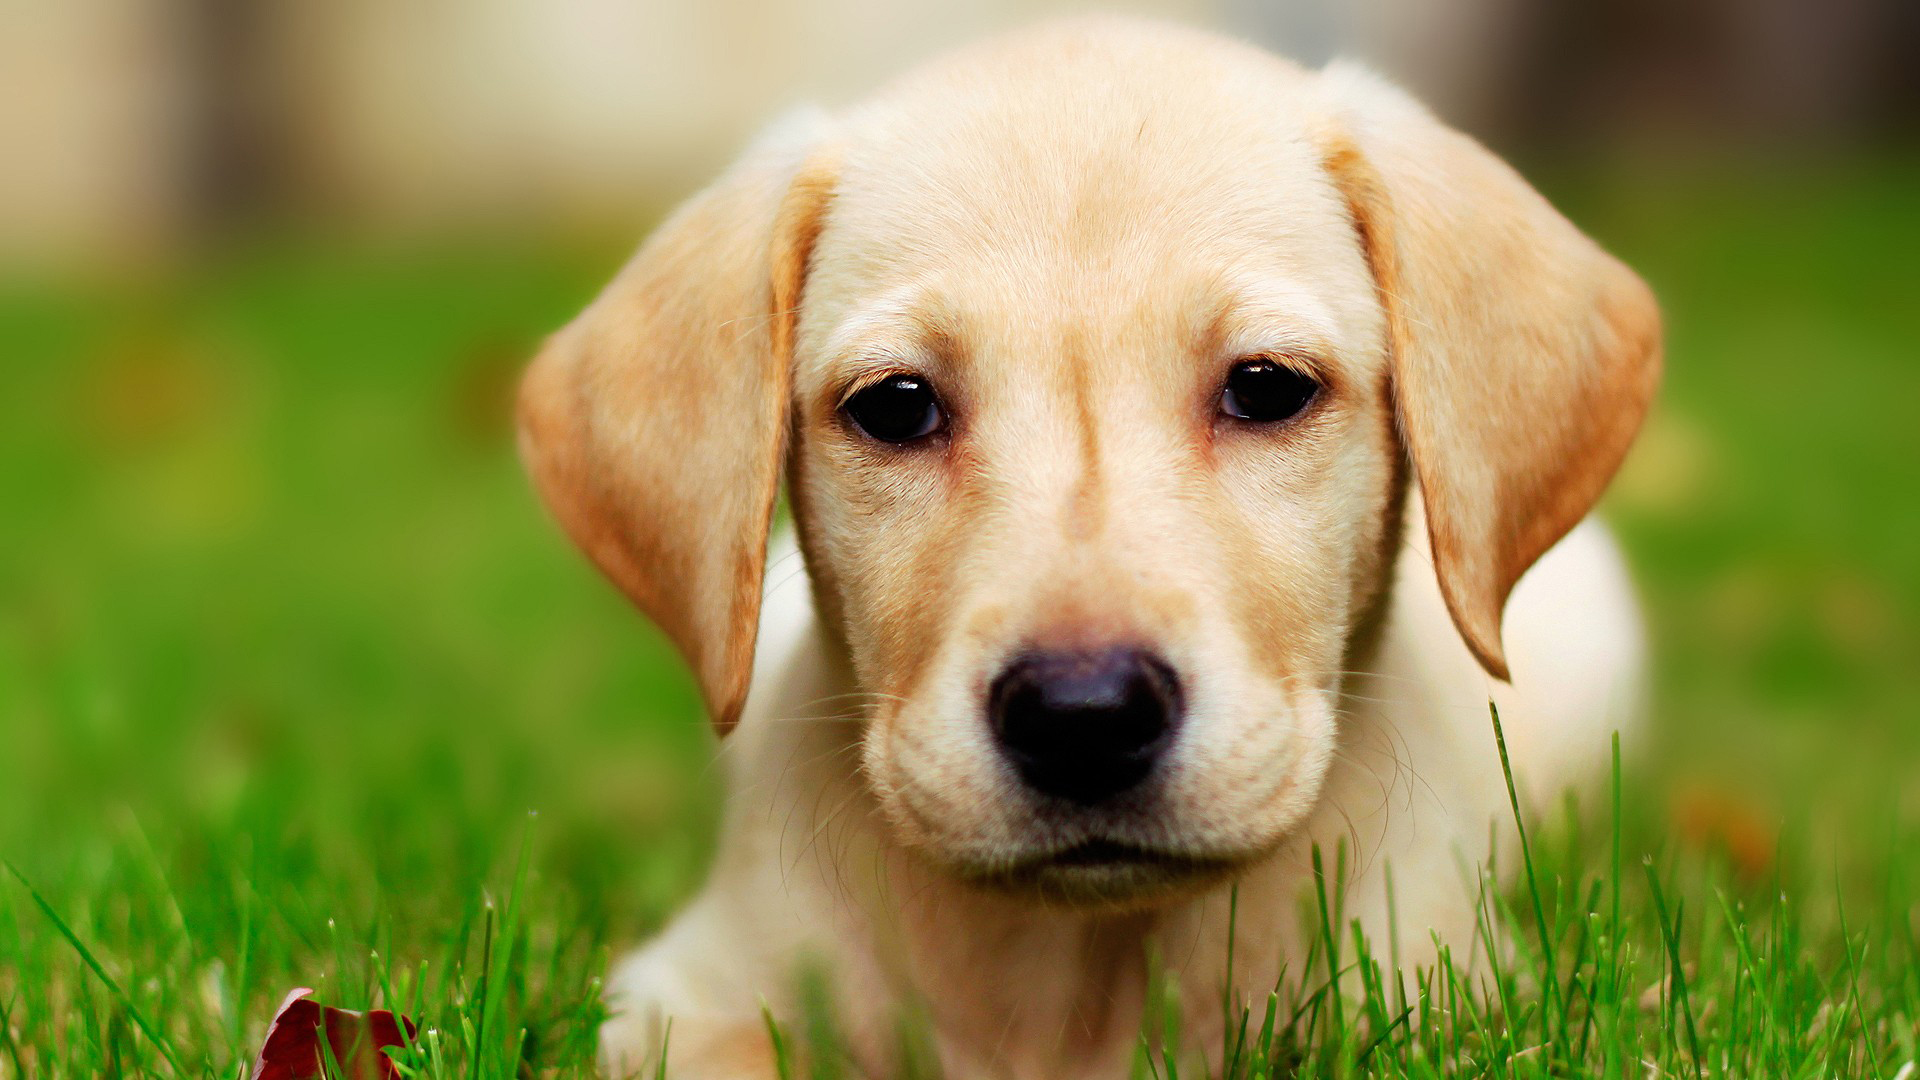 Dog Wallpaper HD Pretty Photos 1920x1080